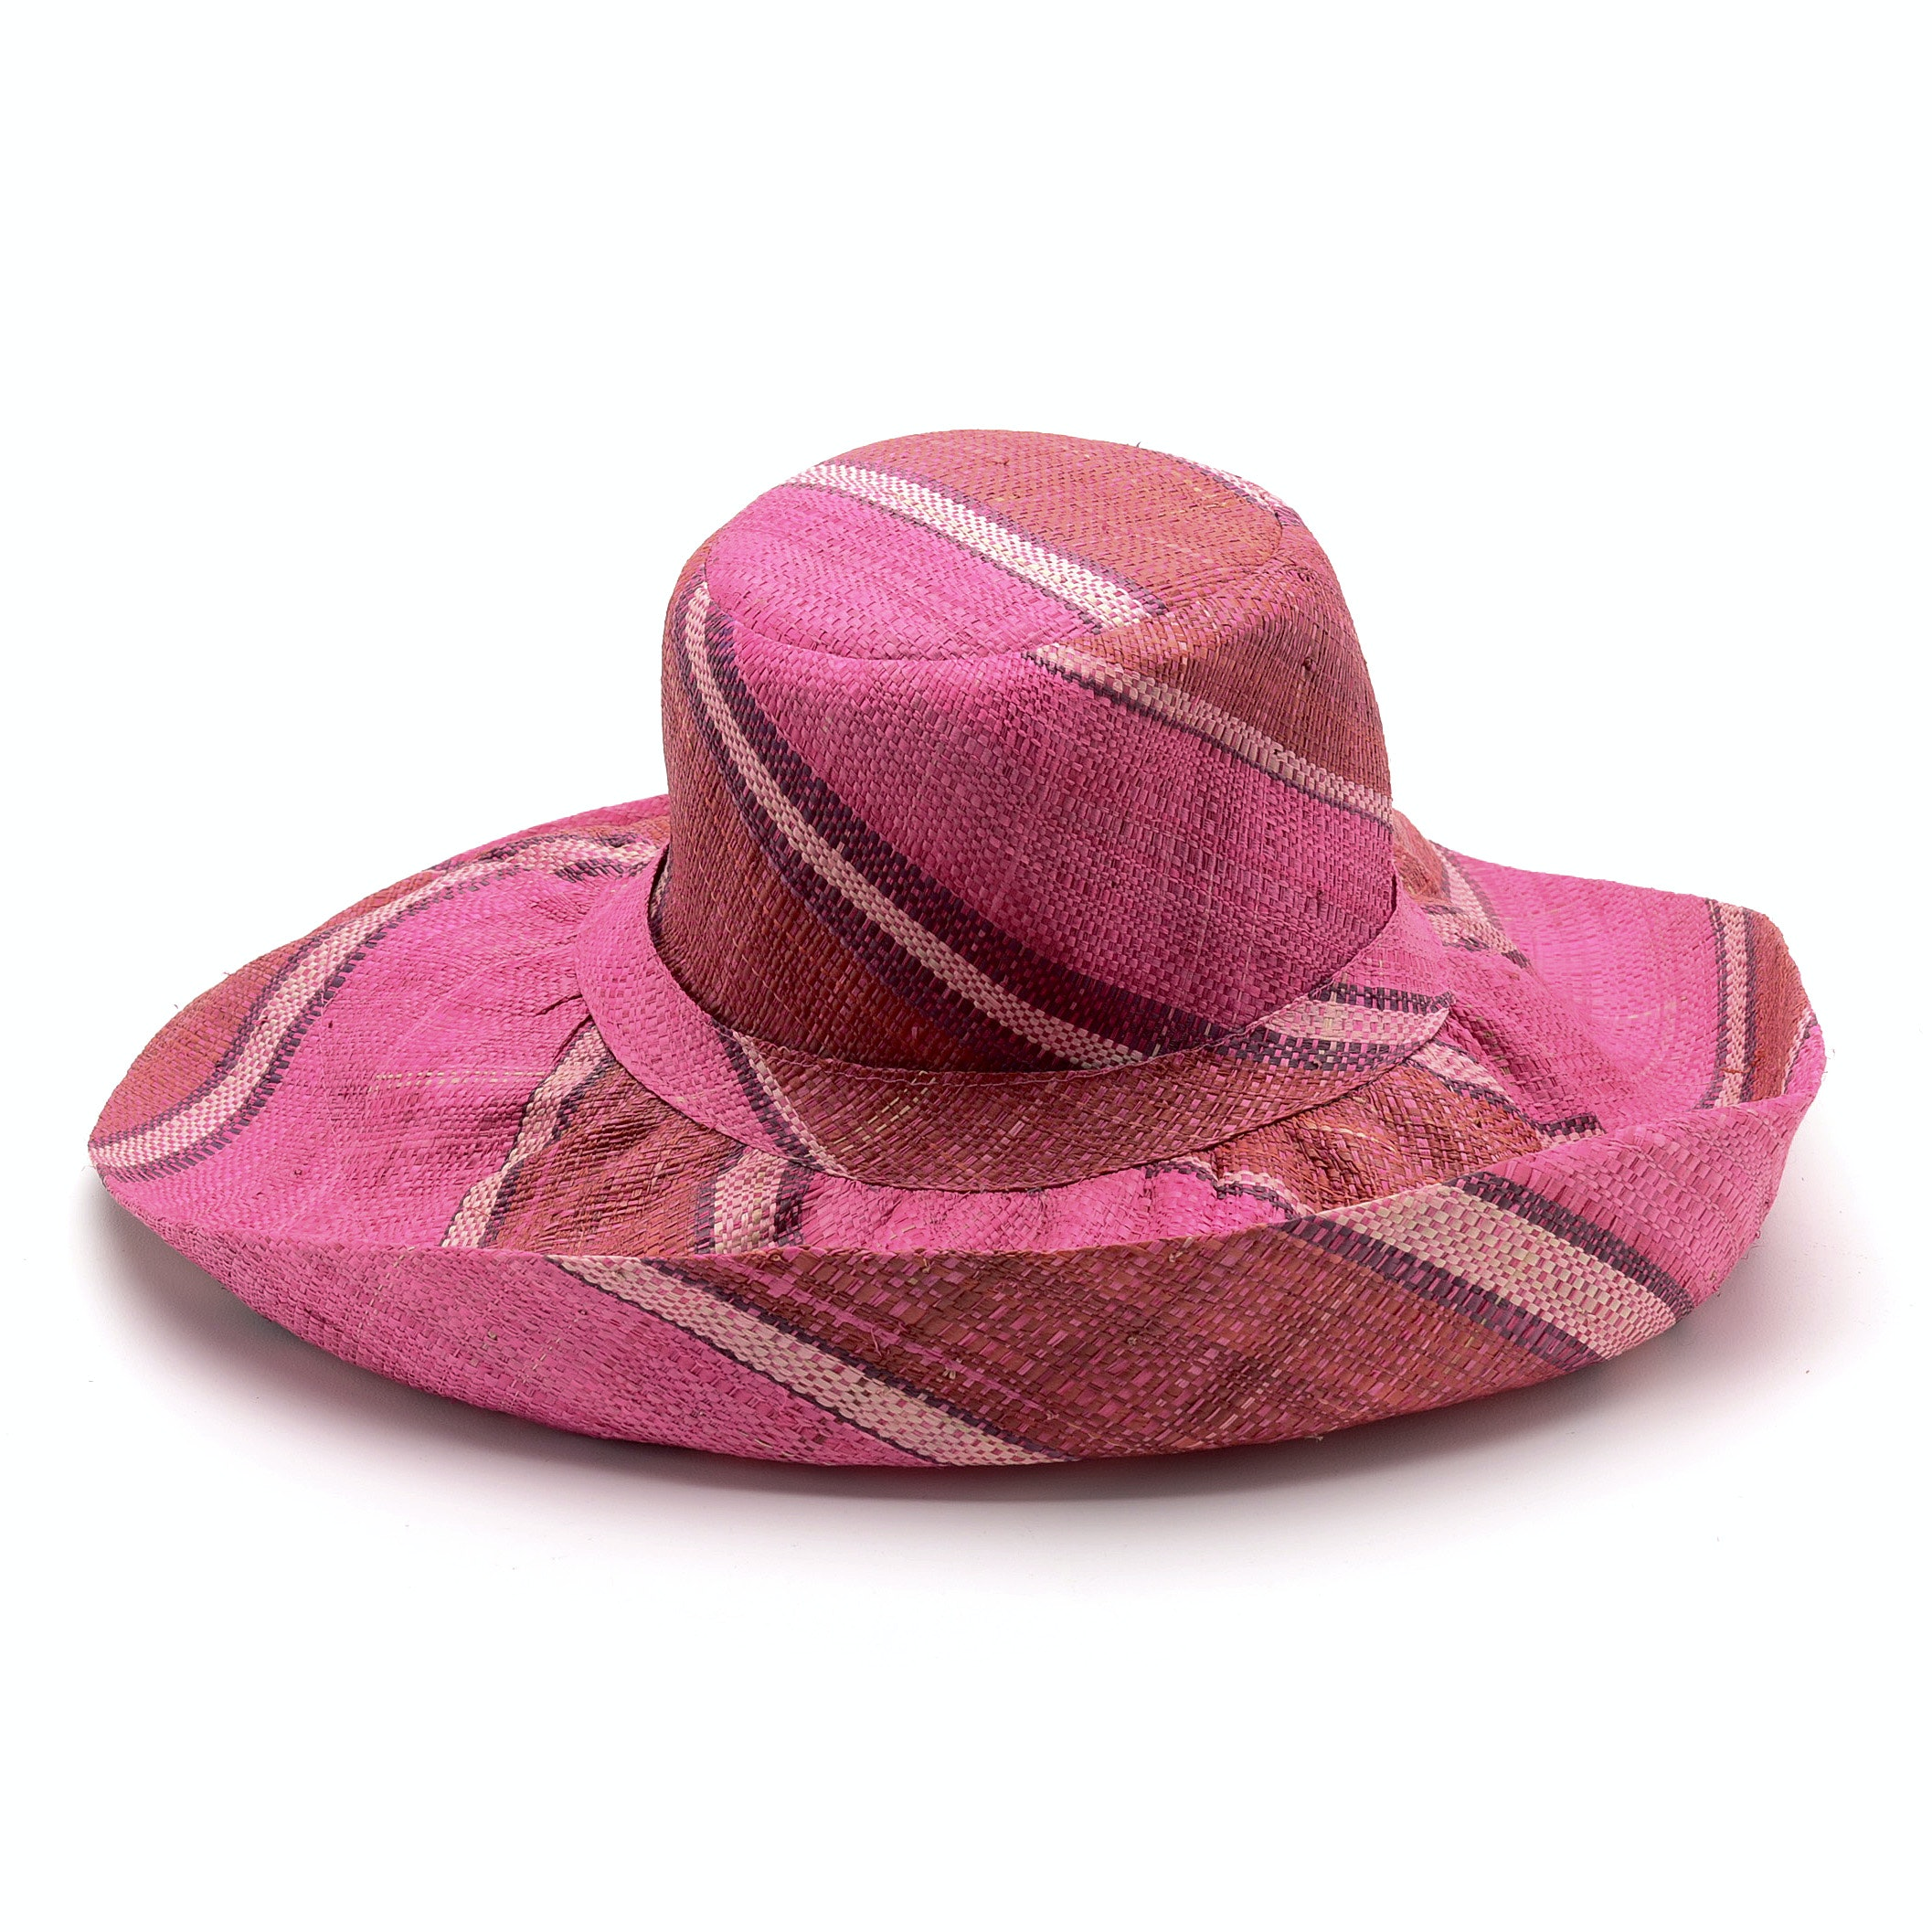 Angela Moore Raphia Medium Brim Floppy Hat in Shades of Pink and Red